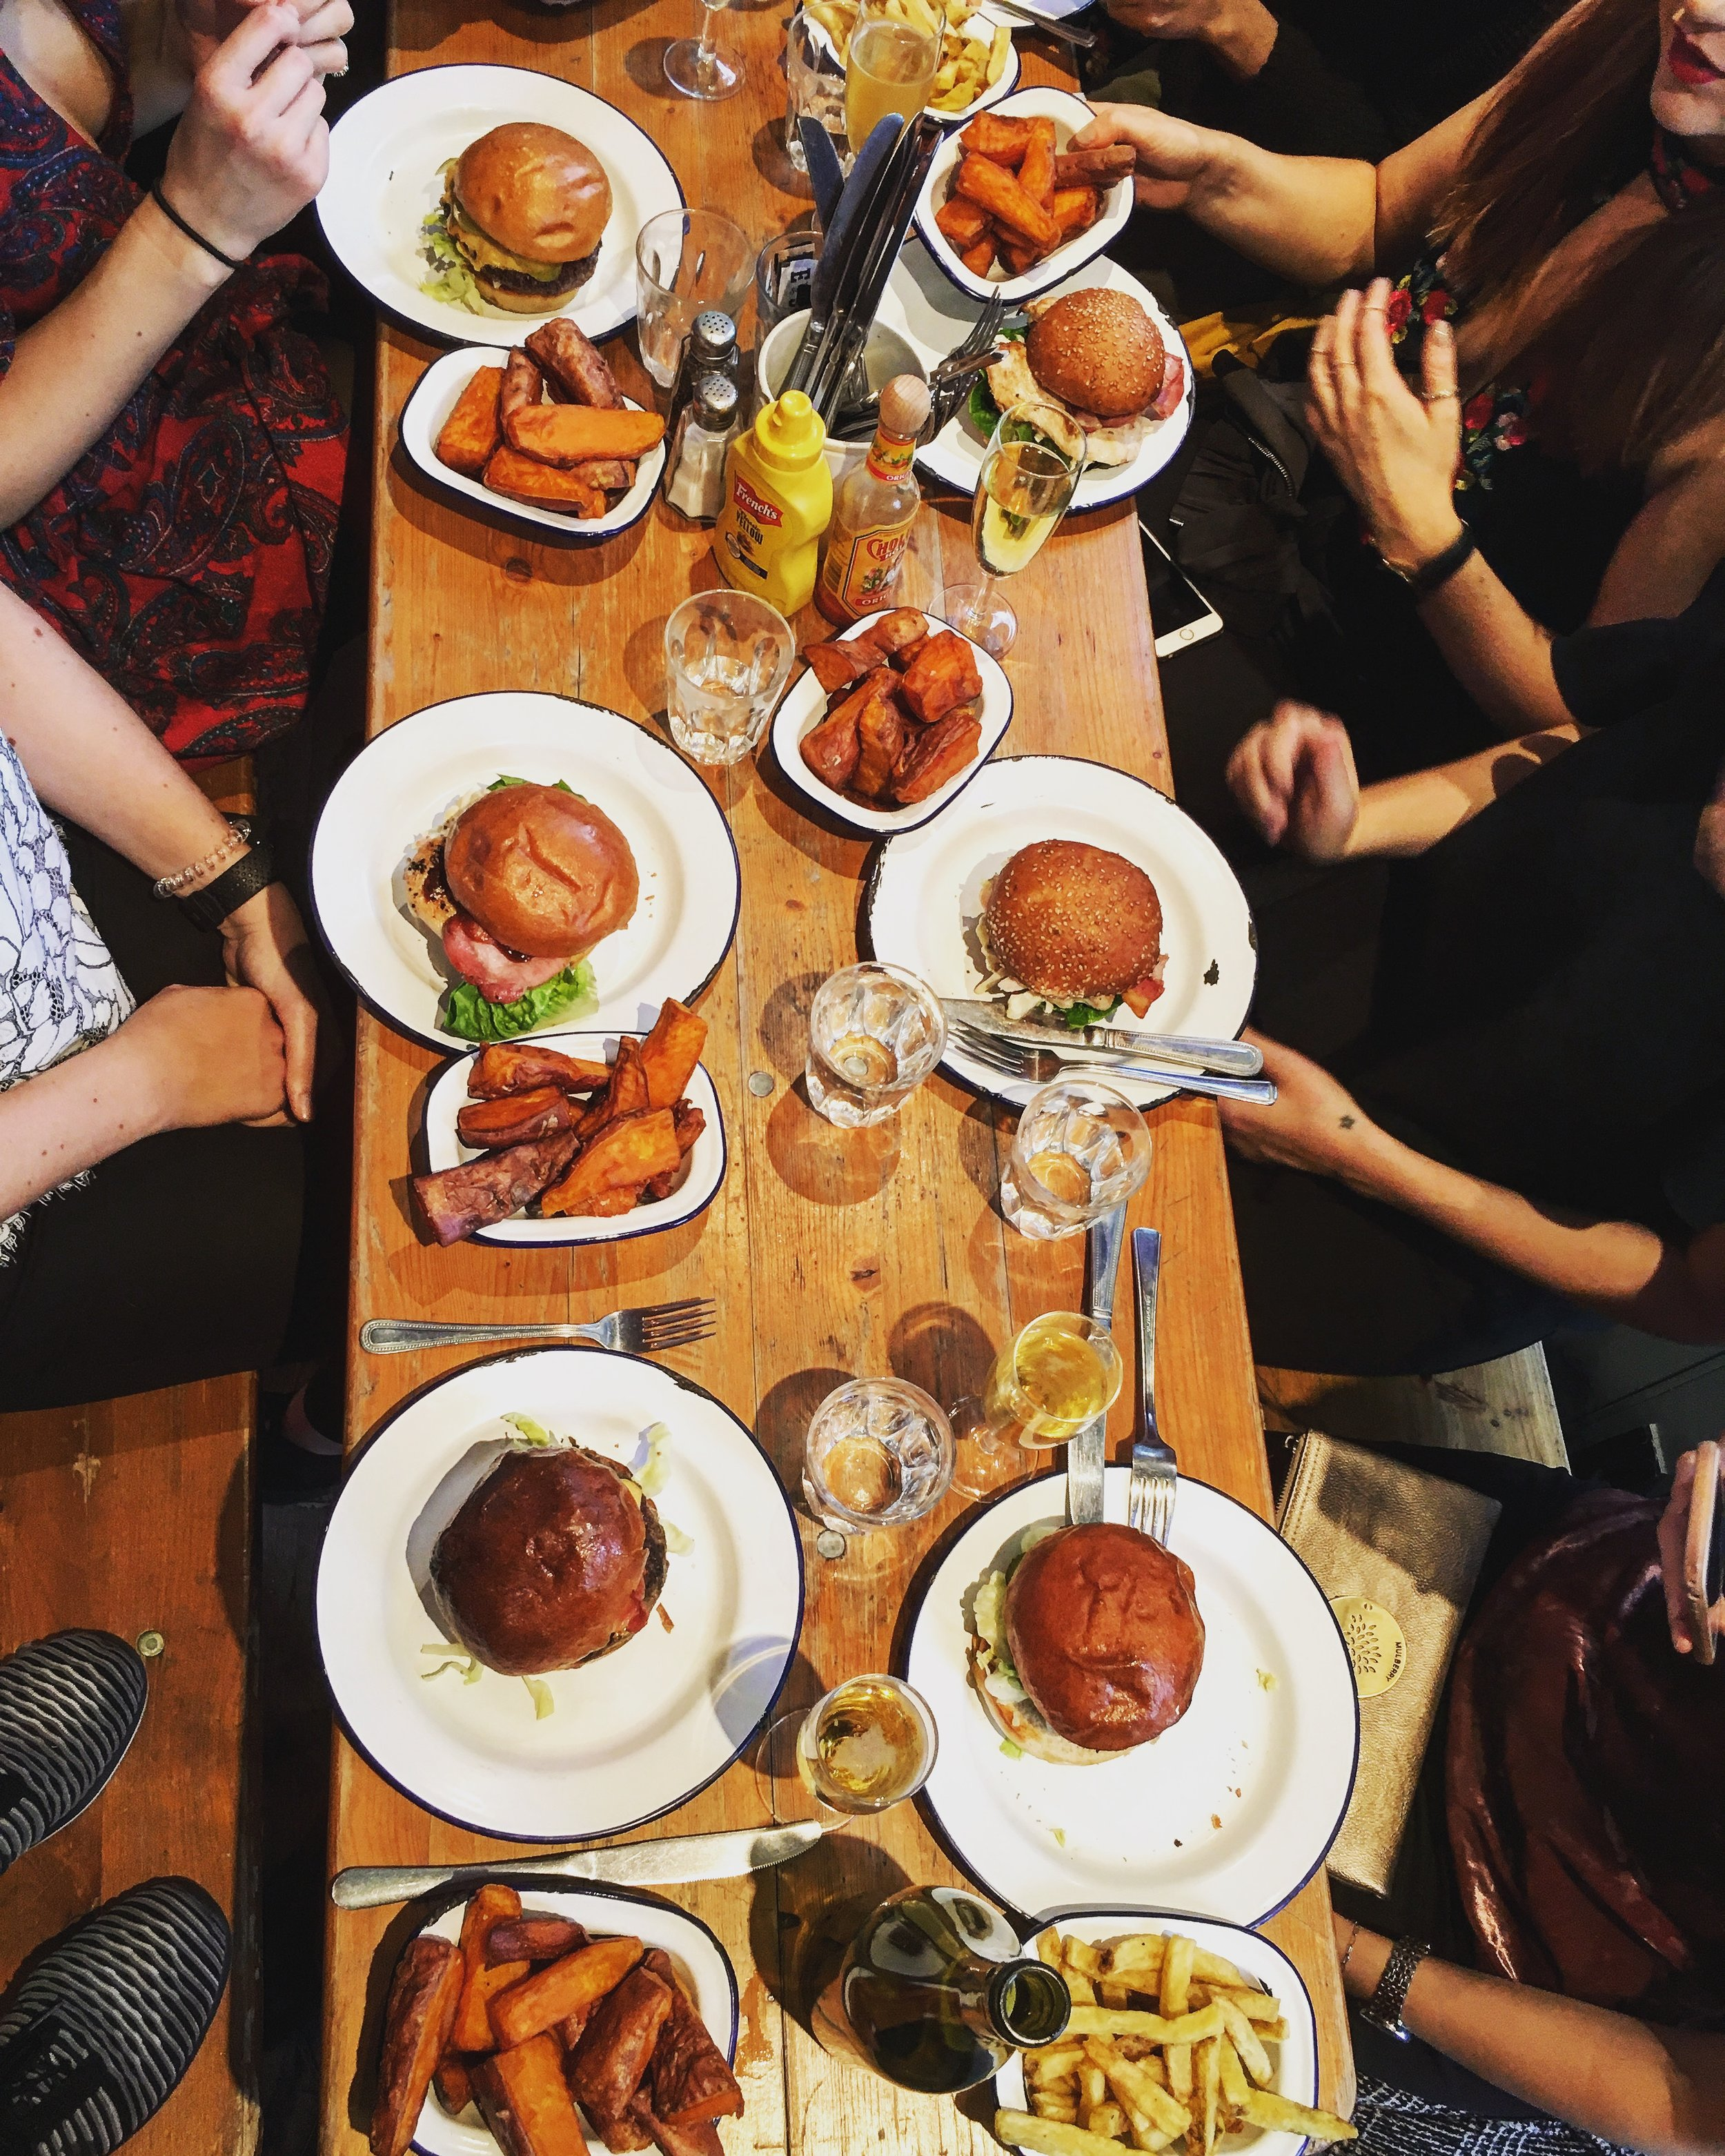 Bottomless Brunches - Kick start the Hen Party in style! Bubbles always help!